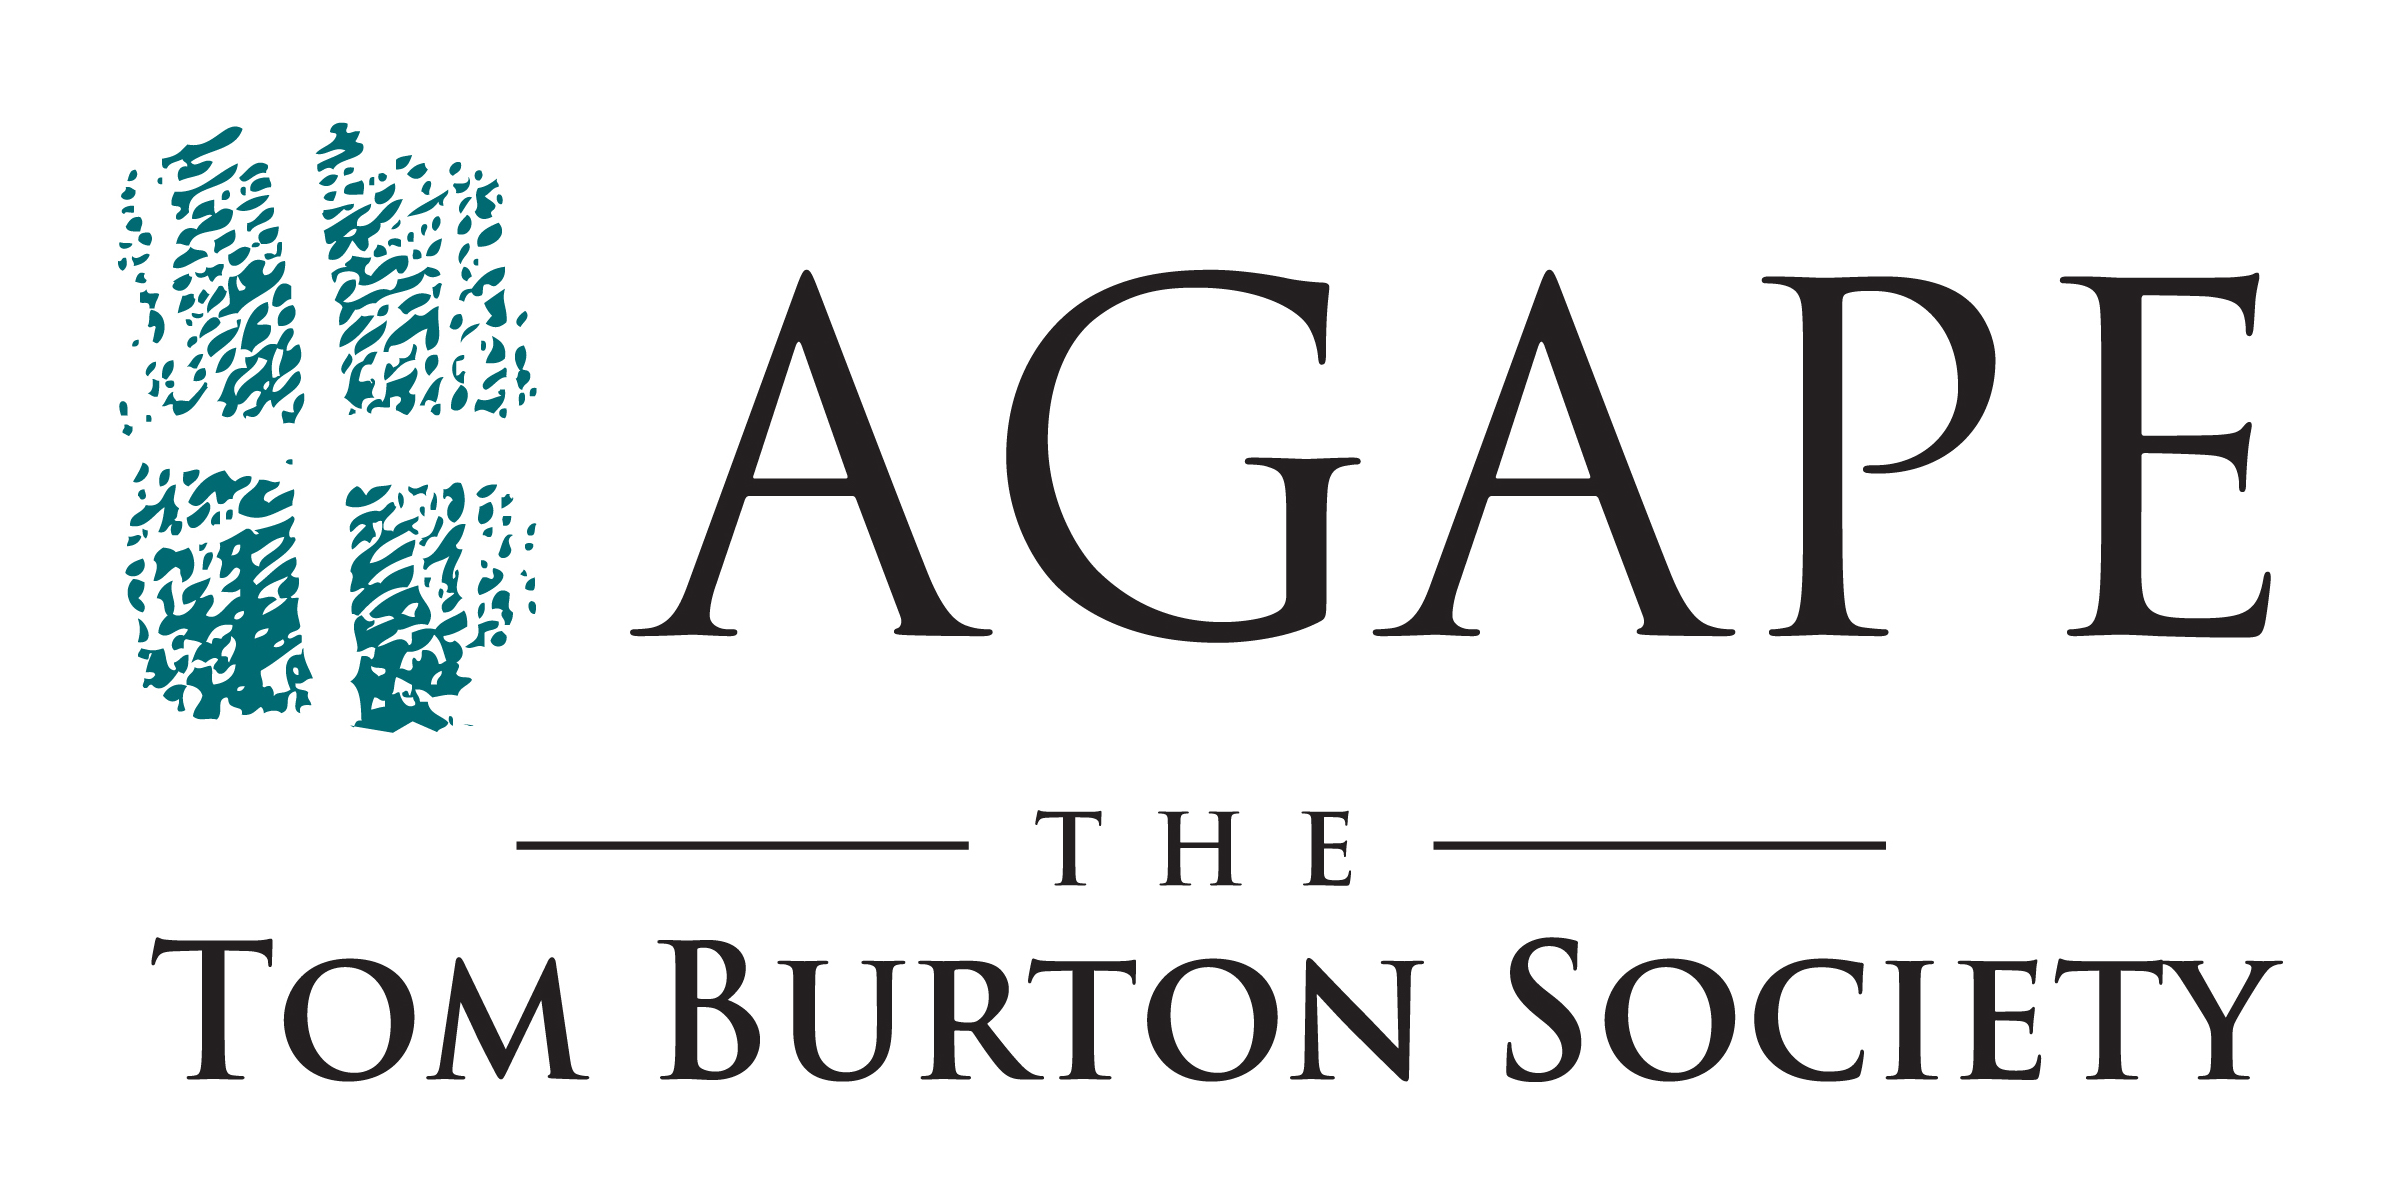 Tom Burton Society